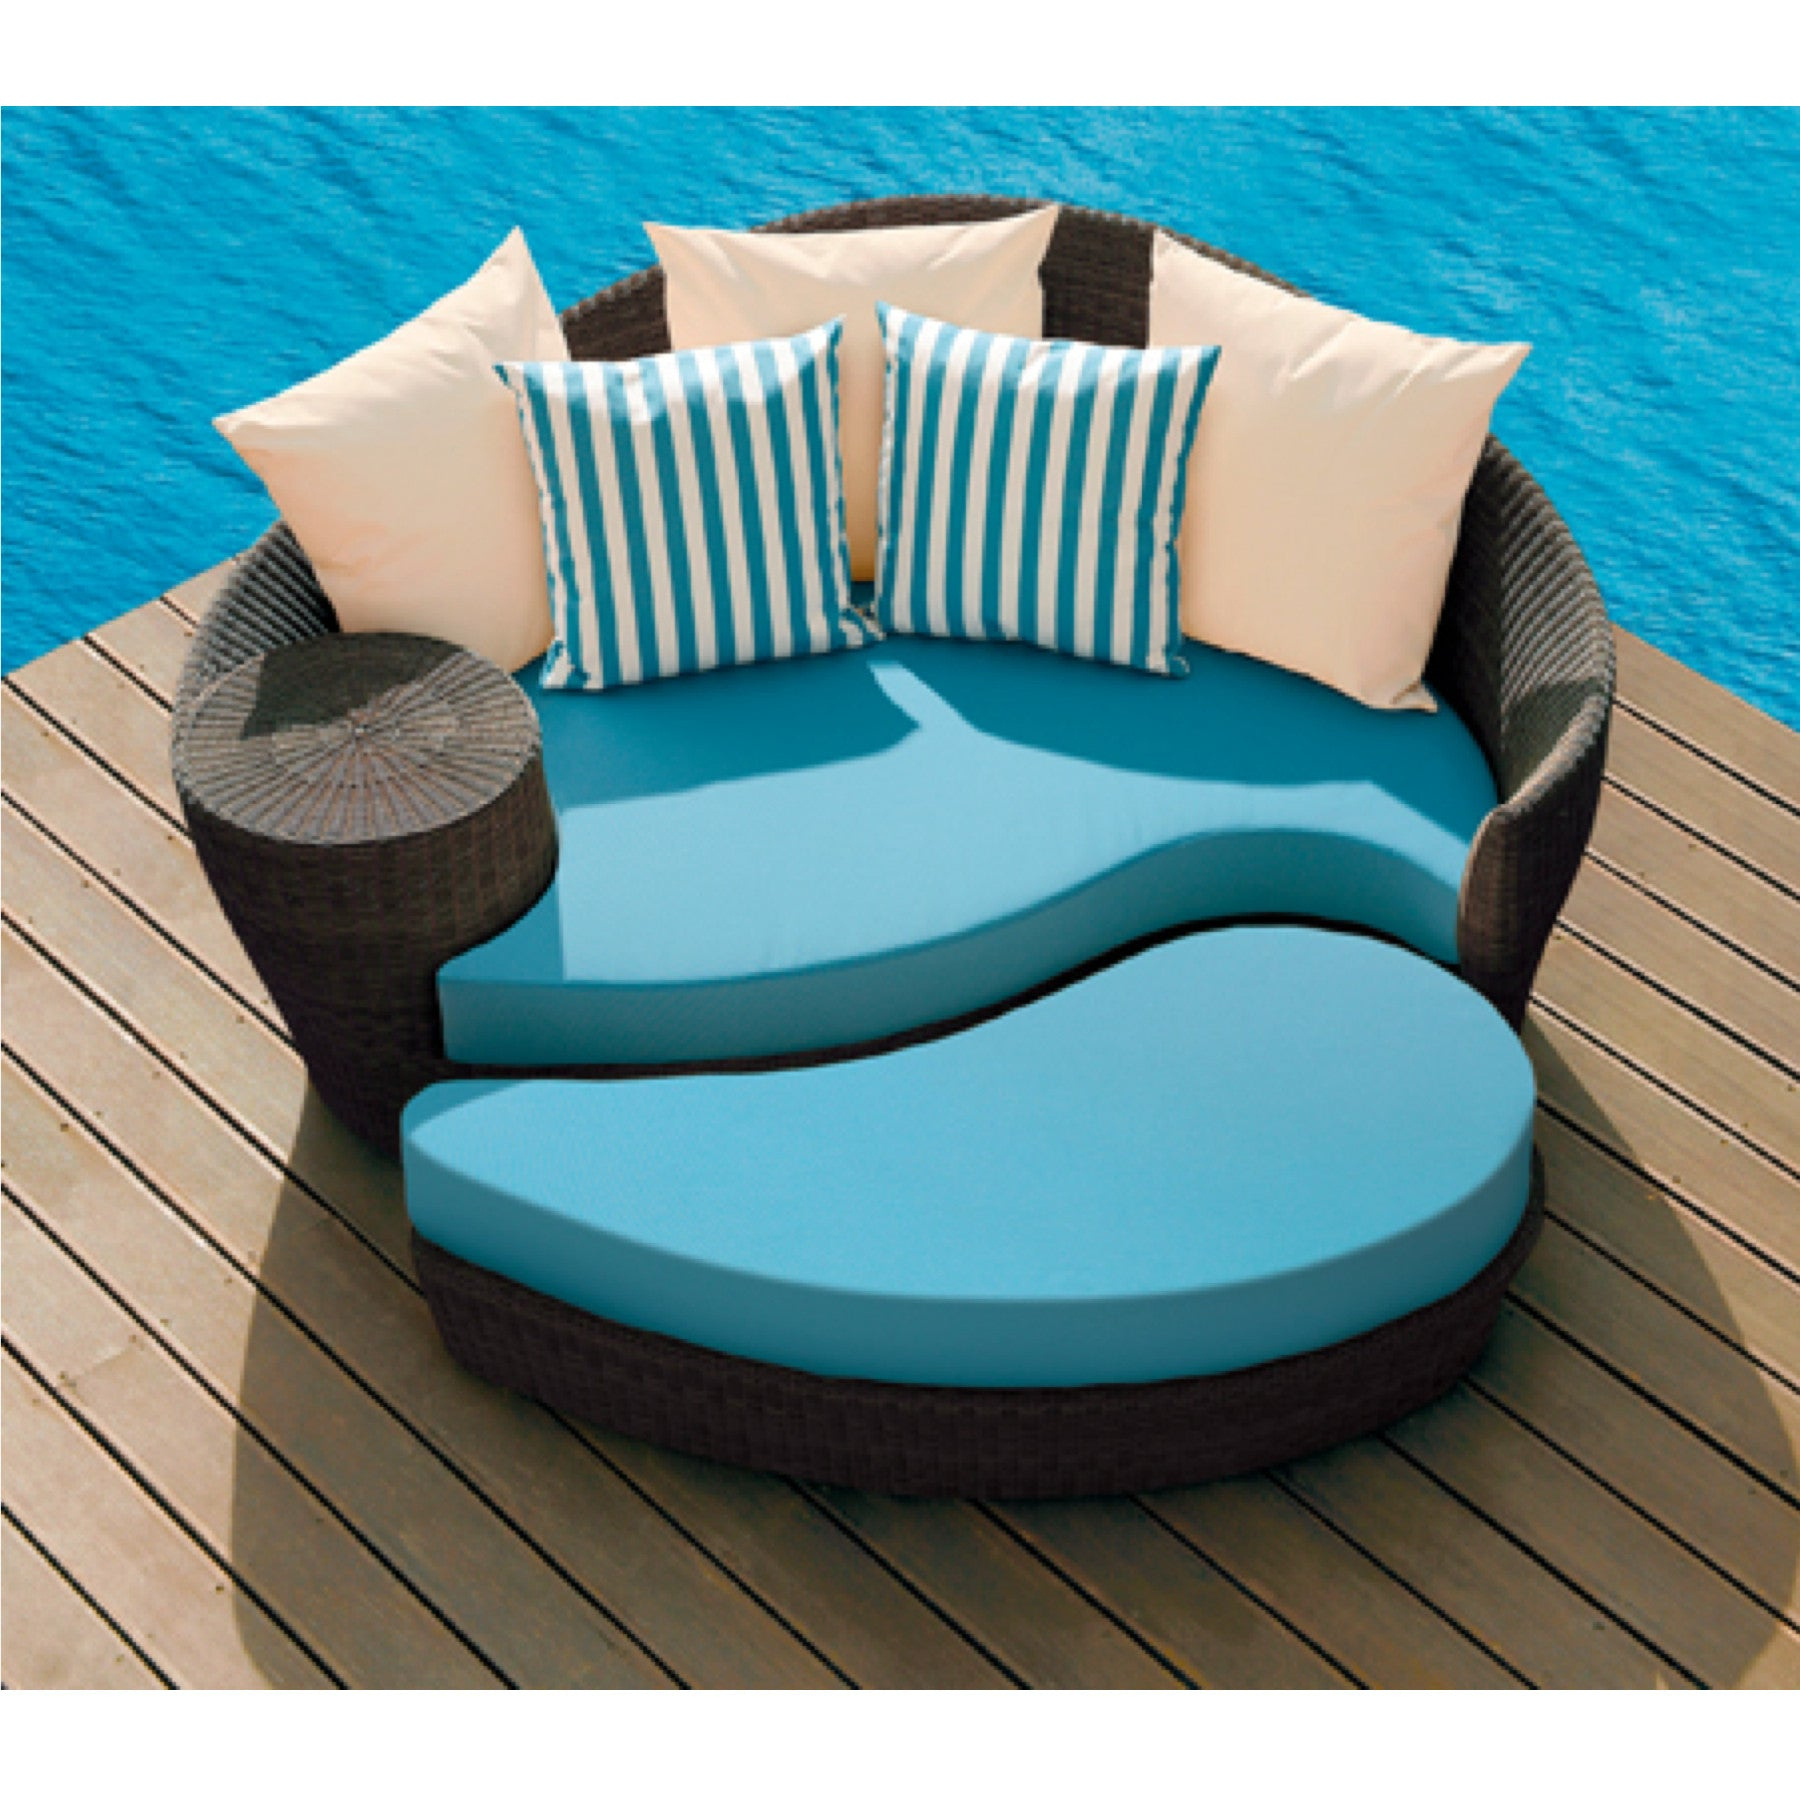 TRO08001 OHMM® Dune Outdoor Daybed